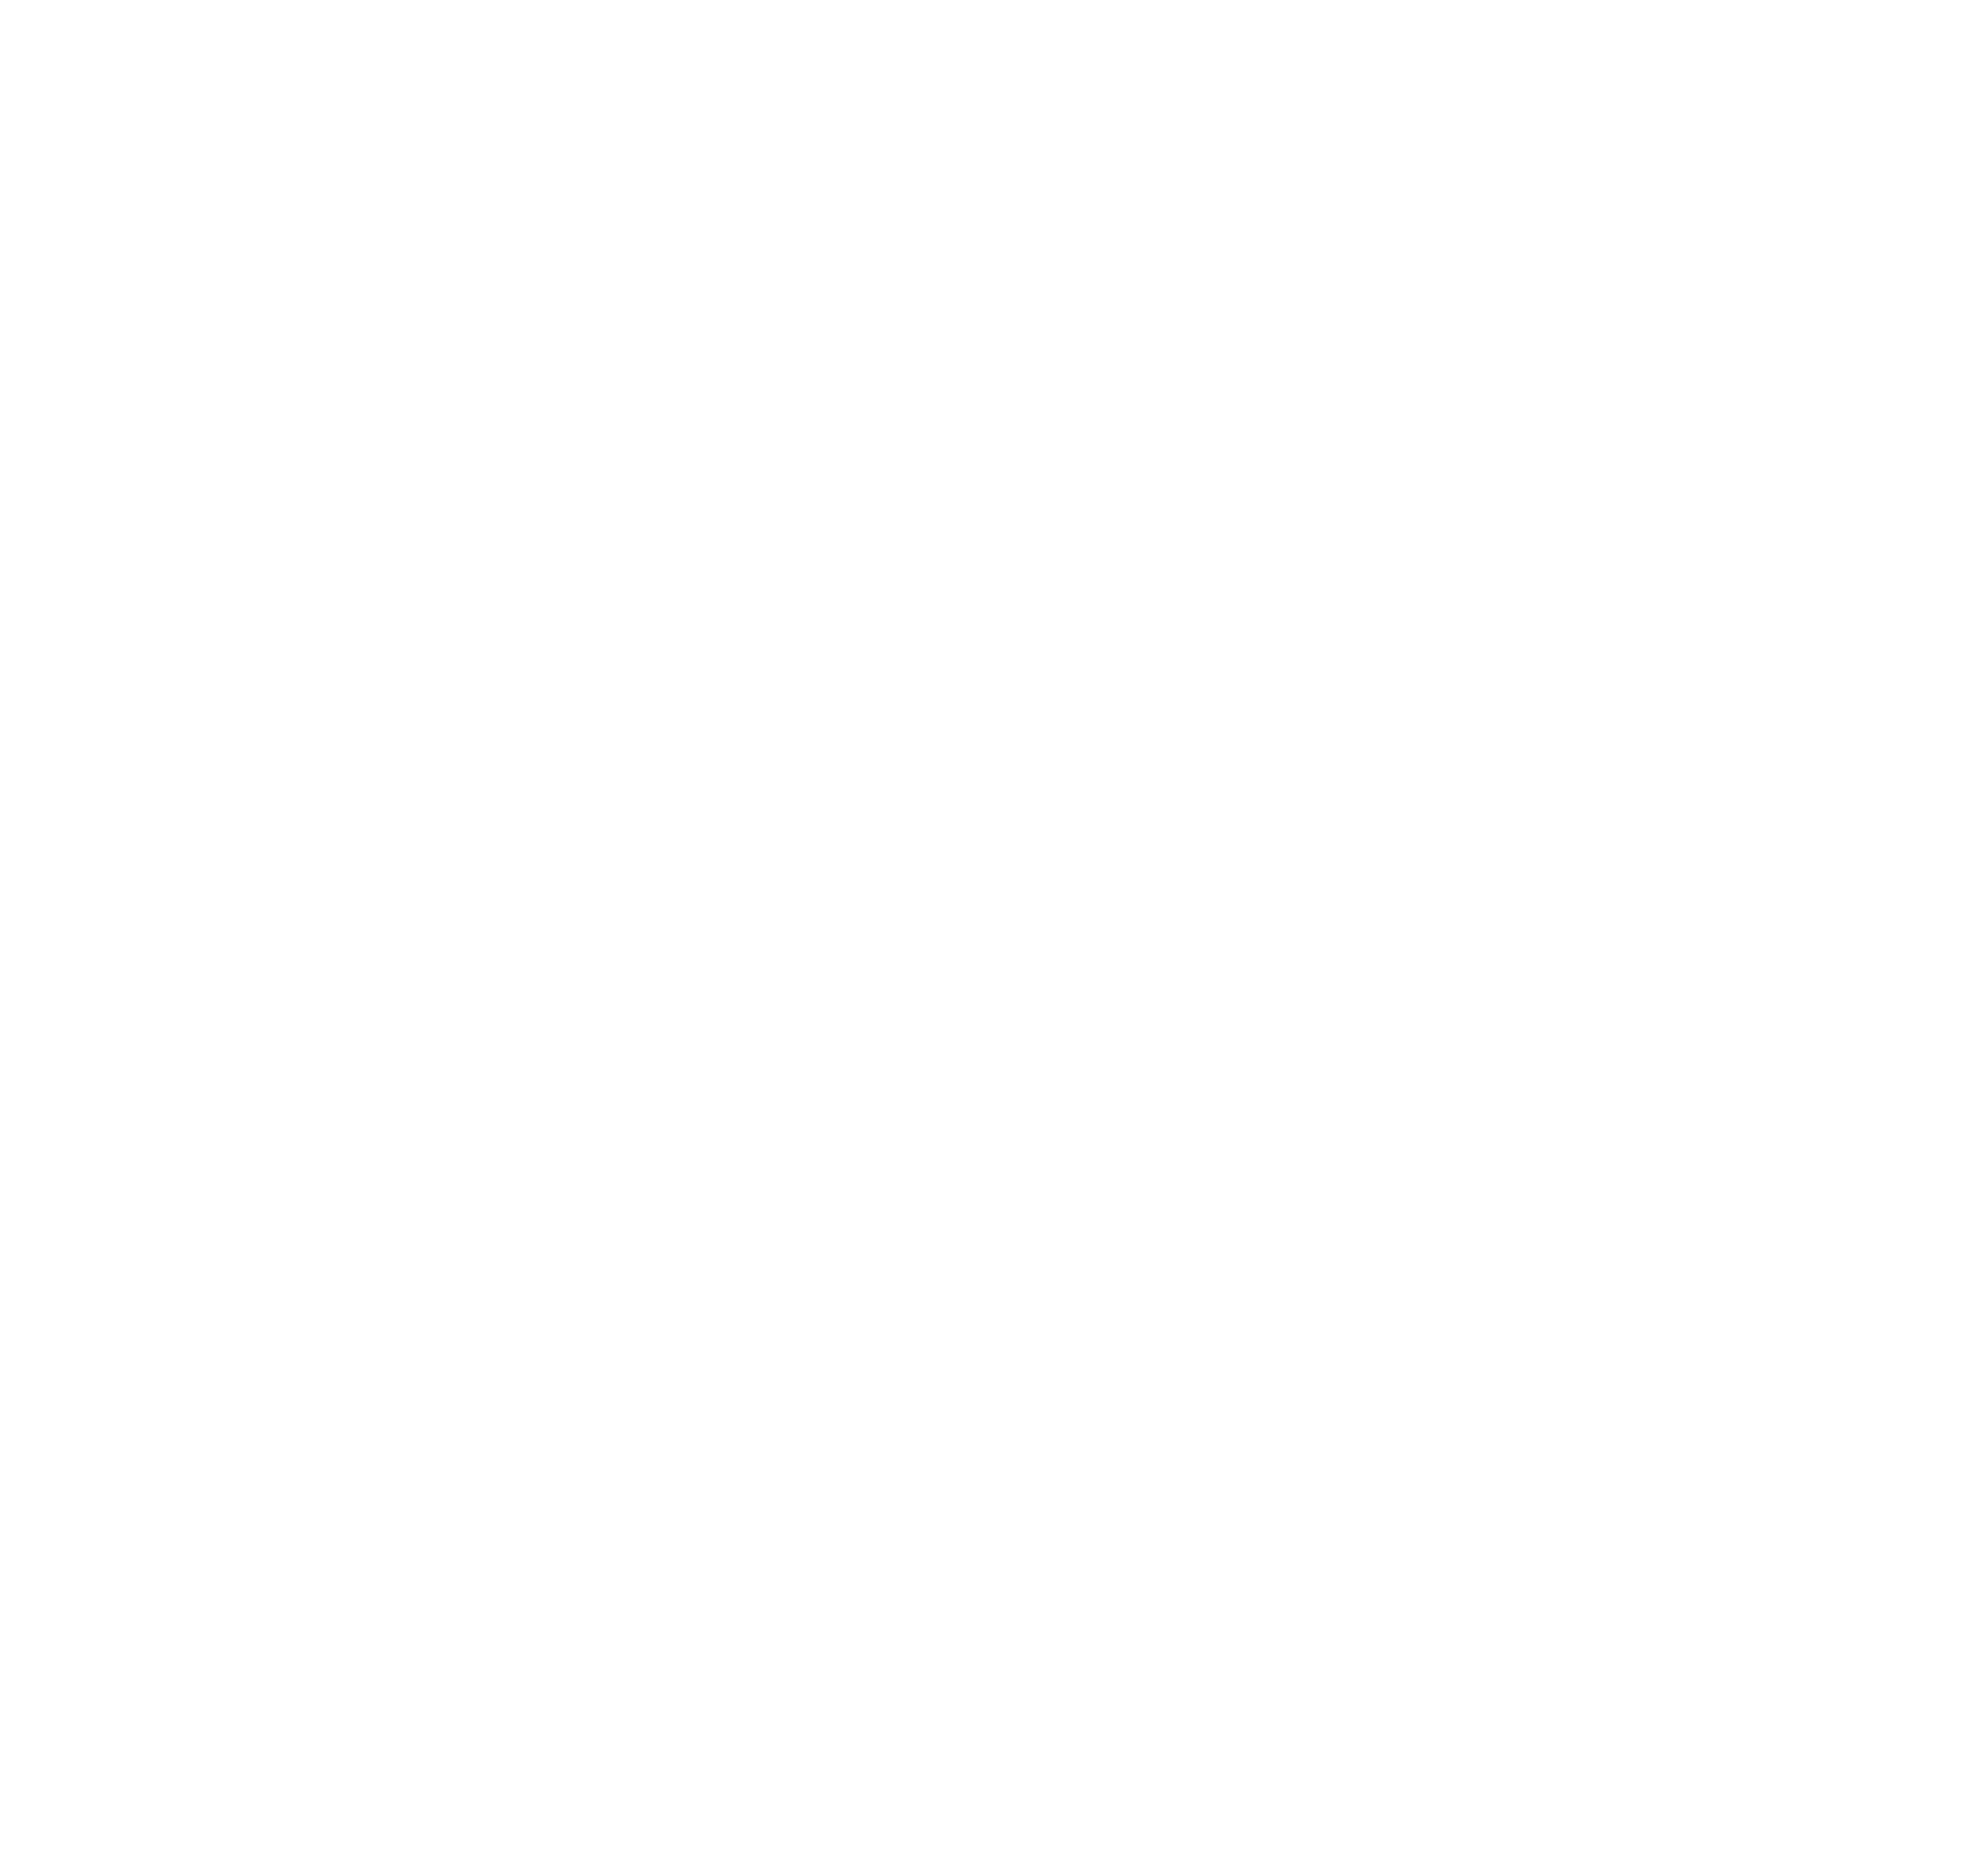 hight resolution of highmark logo white 2019 01 png